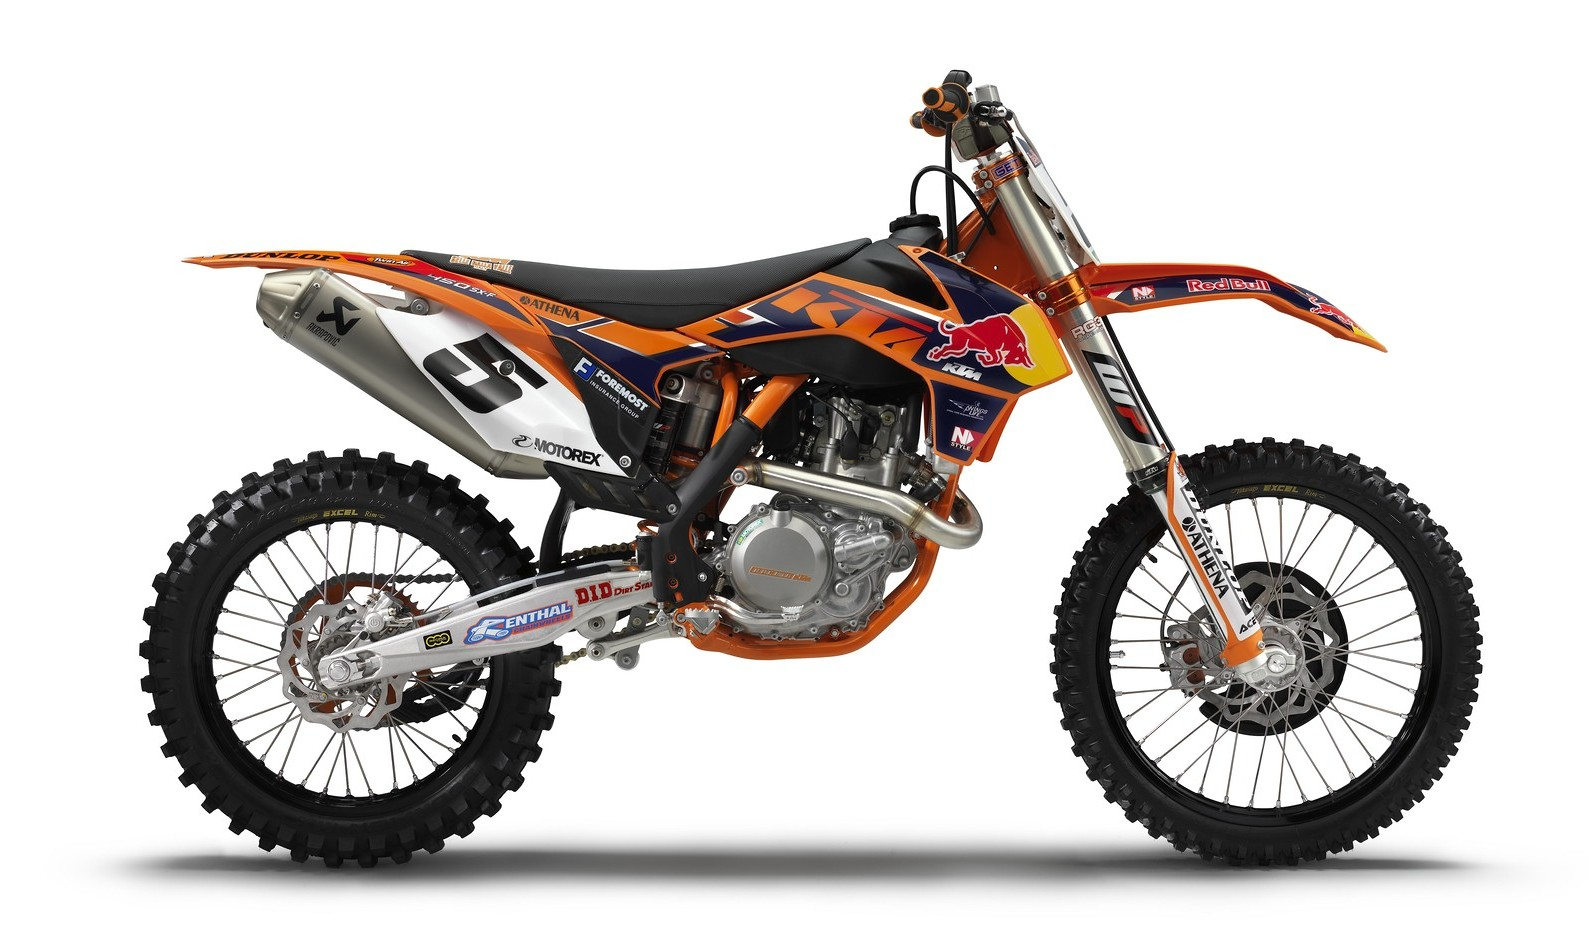 2013 Ktm 450 Sx F Factory Edition Reviews Comparisons